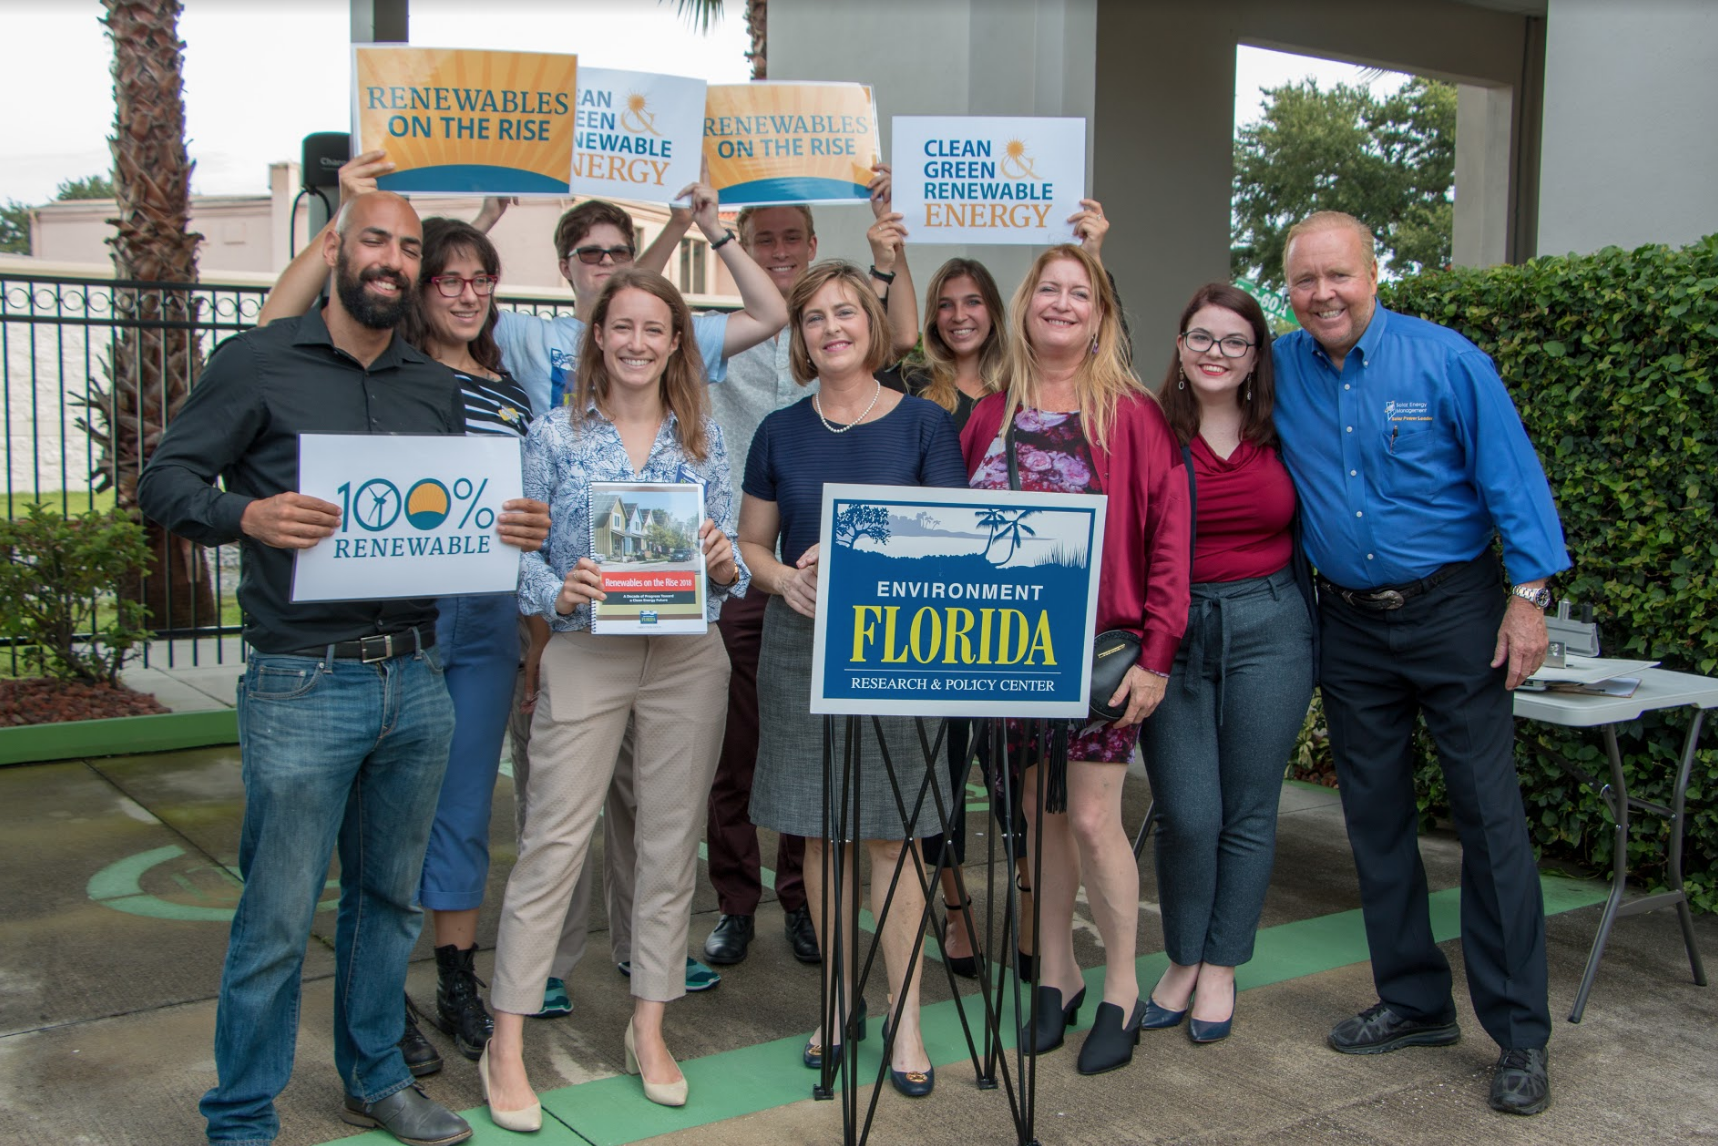 Environment Florida staff and supporters campaigning for renewable energy in the Sunshine State.